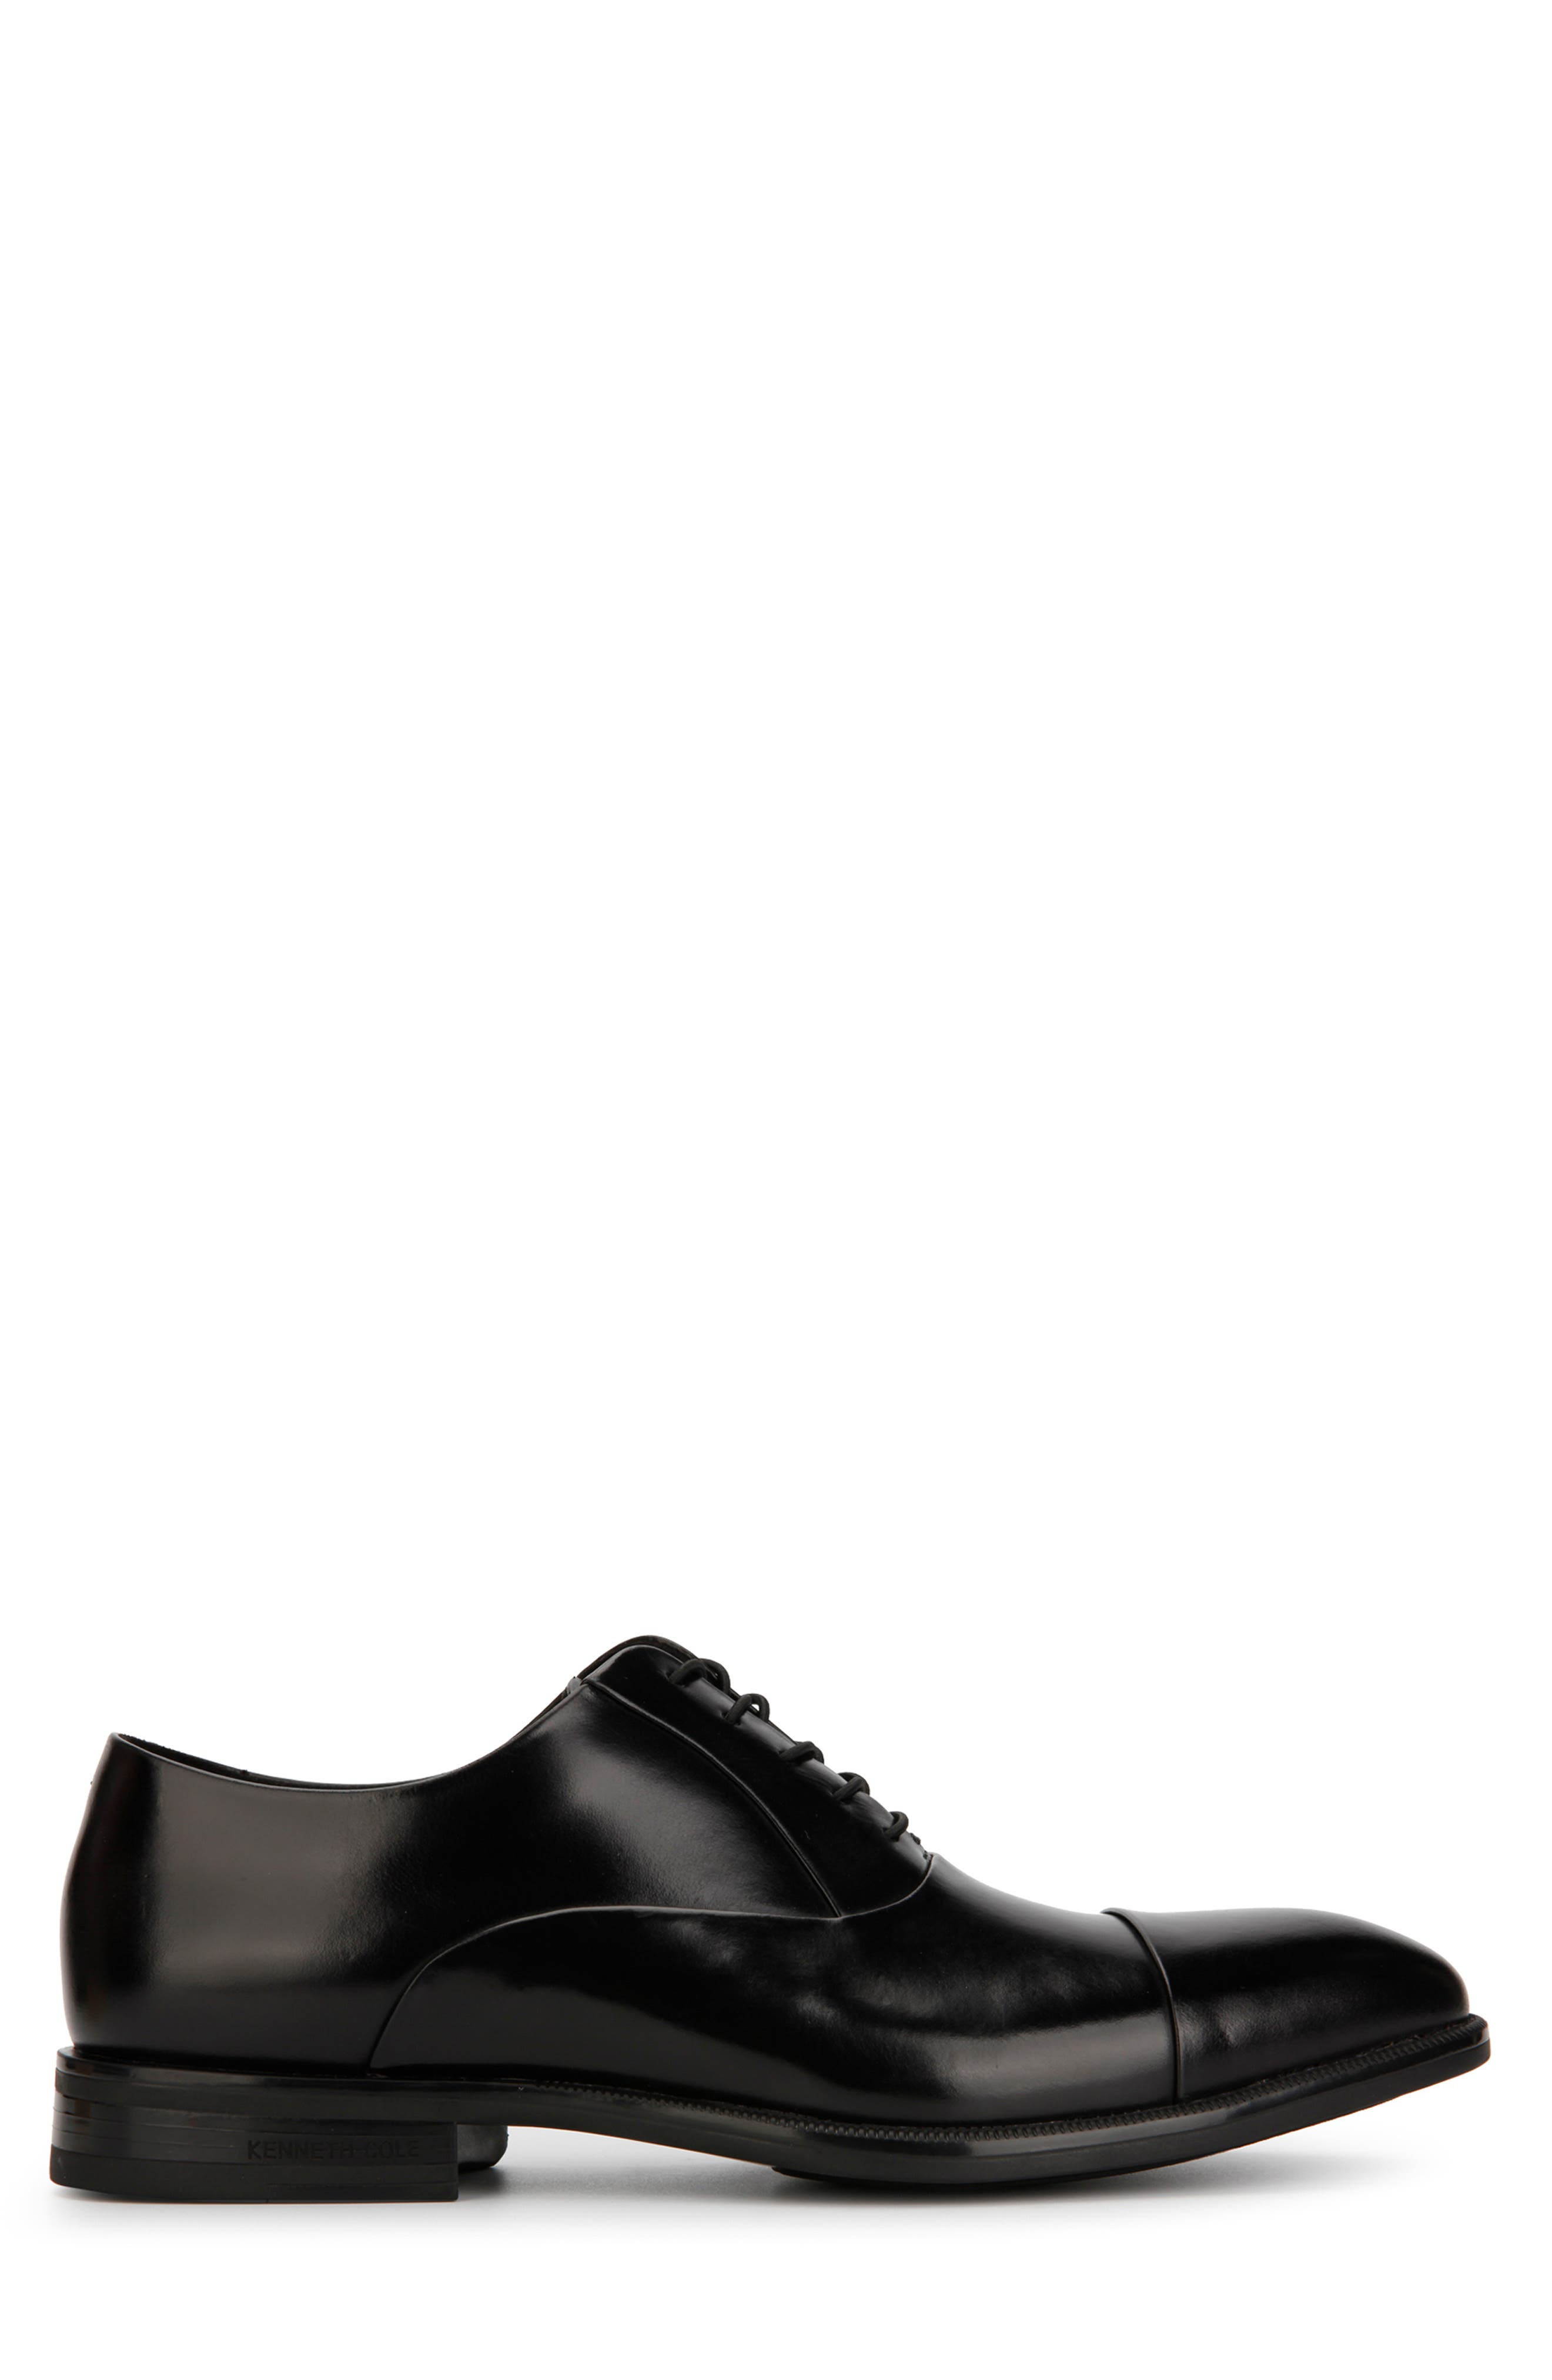 KENNETH COLE NEW YORK, Futurepod Cap Toe Oxford, Alternate thumbnail 2, color, BLACK LEATHER